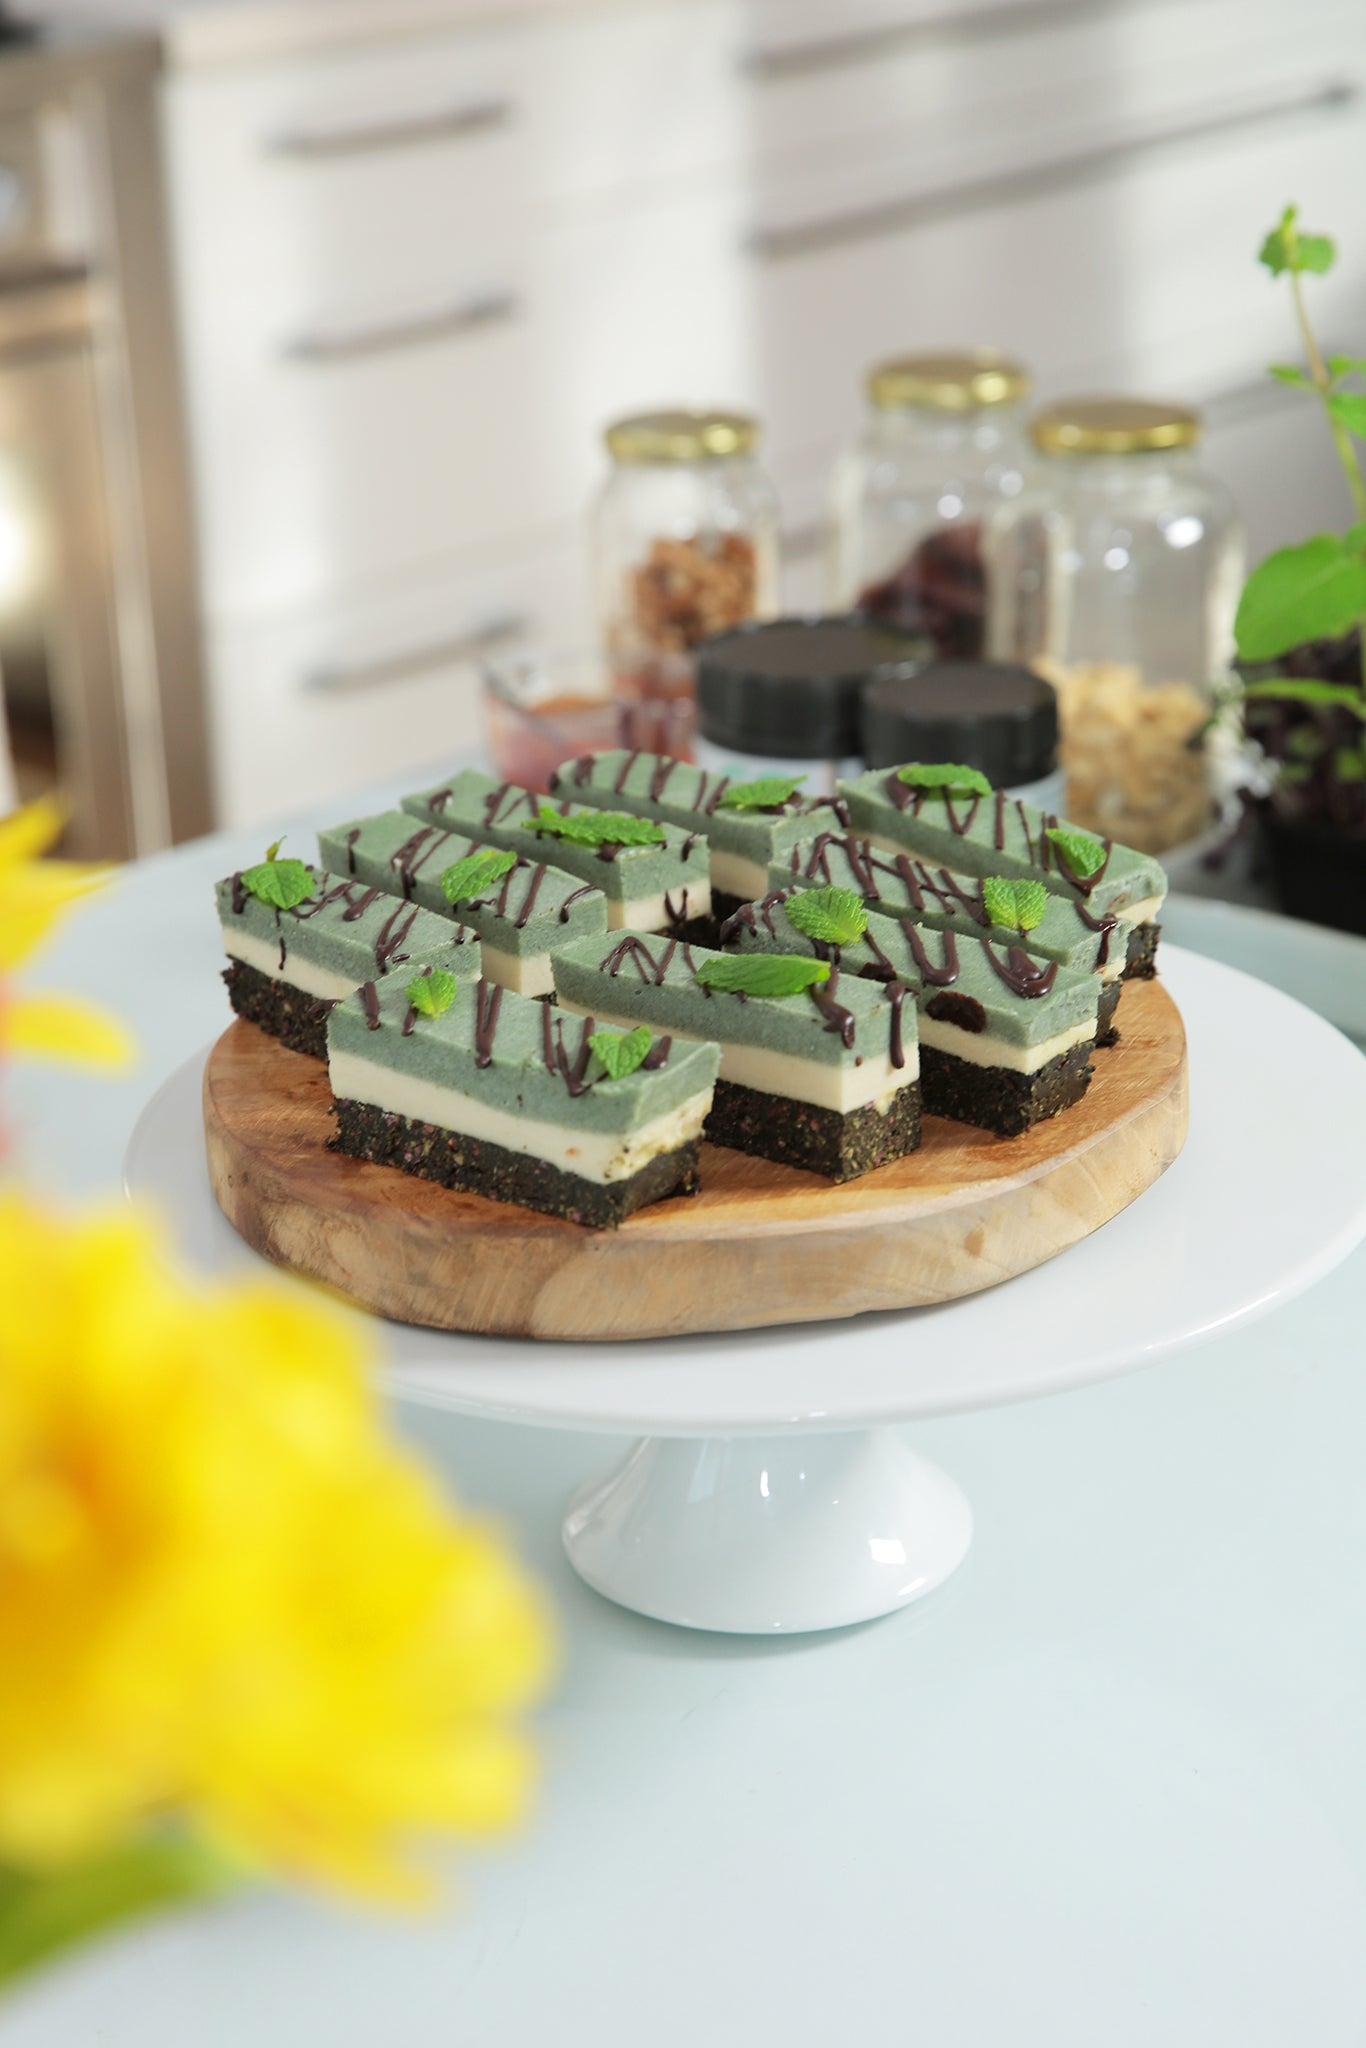 Healthy CHOCOLATE MINT SPIRULINA SLICE - vegan, plant based, dairy free, gluten free, raw, whole foods, easy, peppermint, natural, sweet treats, begoodorganics